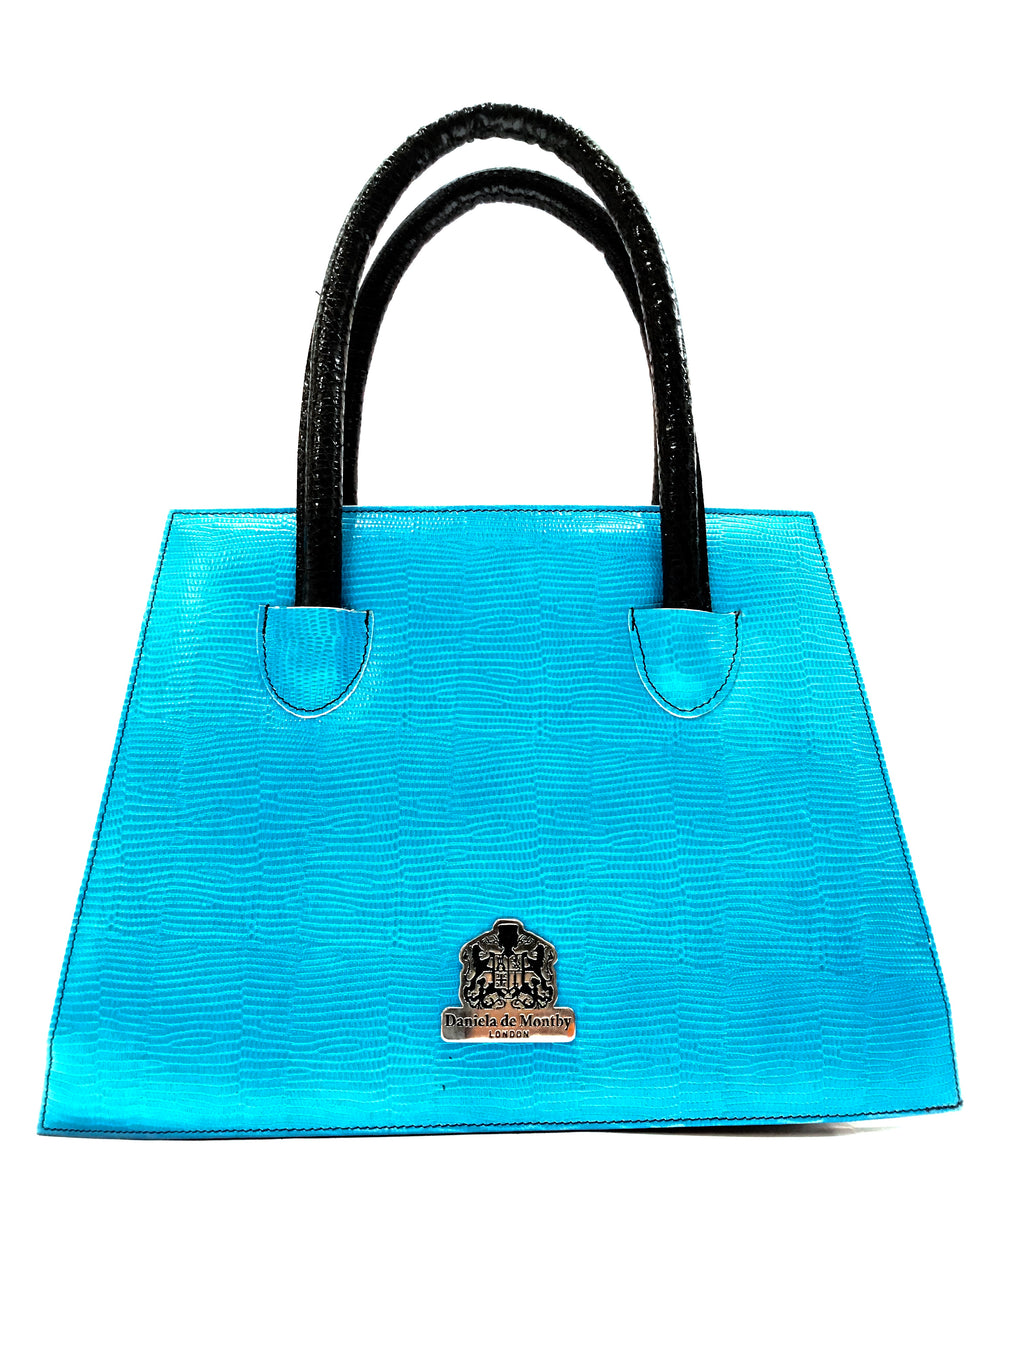 Turquoise Texture Wonder Bag Black Handles